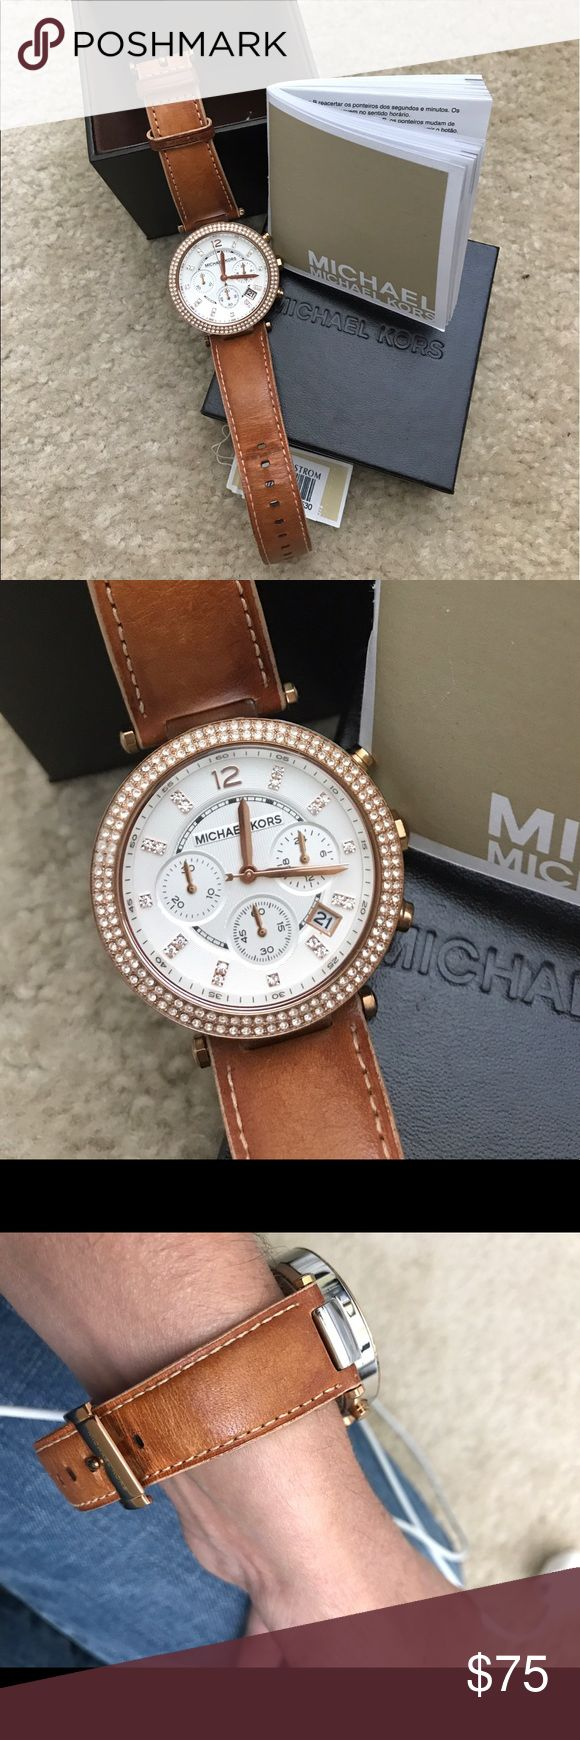 Michael Kors Parker Chronograph watch Used MK chronograph watch stainless steel case/leather strap, fixed rose gold tone bezel set with crystals.                                                                          Case diameter: 39 mm MICHAEL Michael Kors Accessories Watches